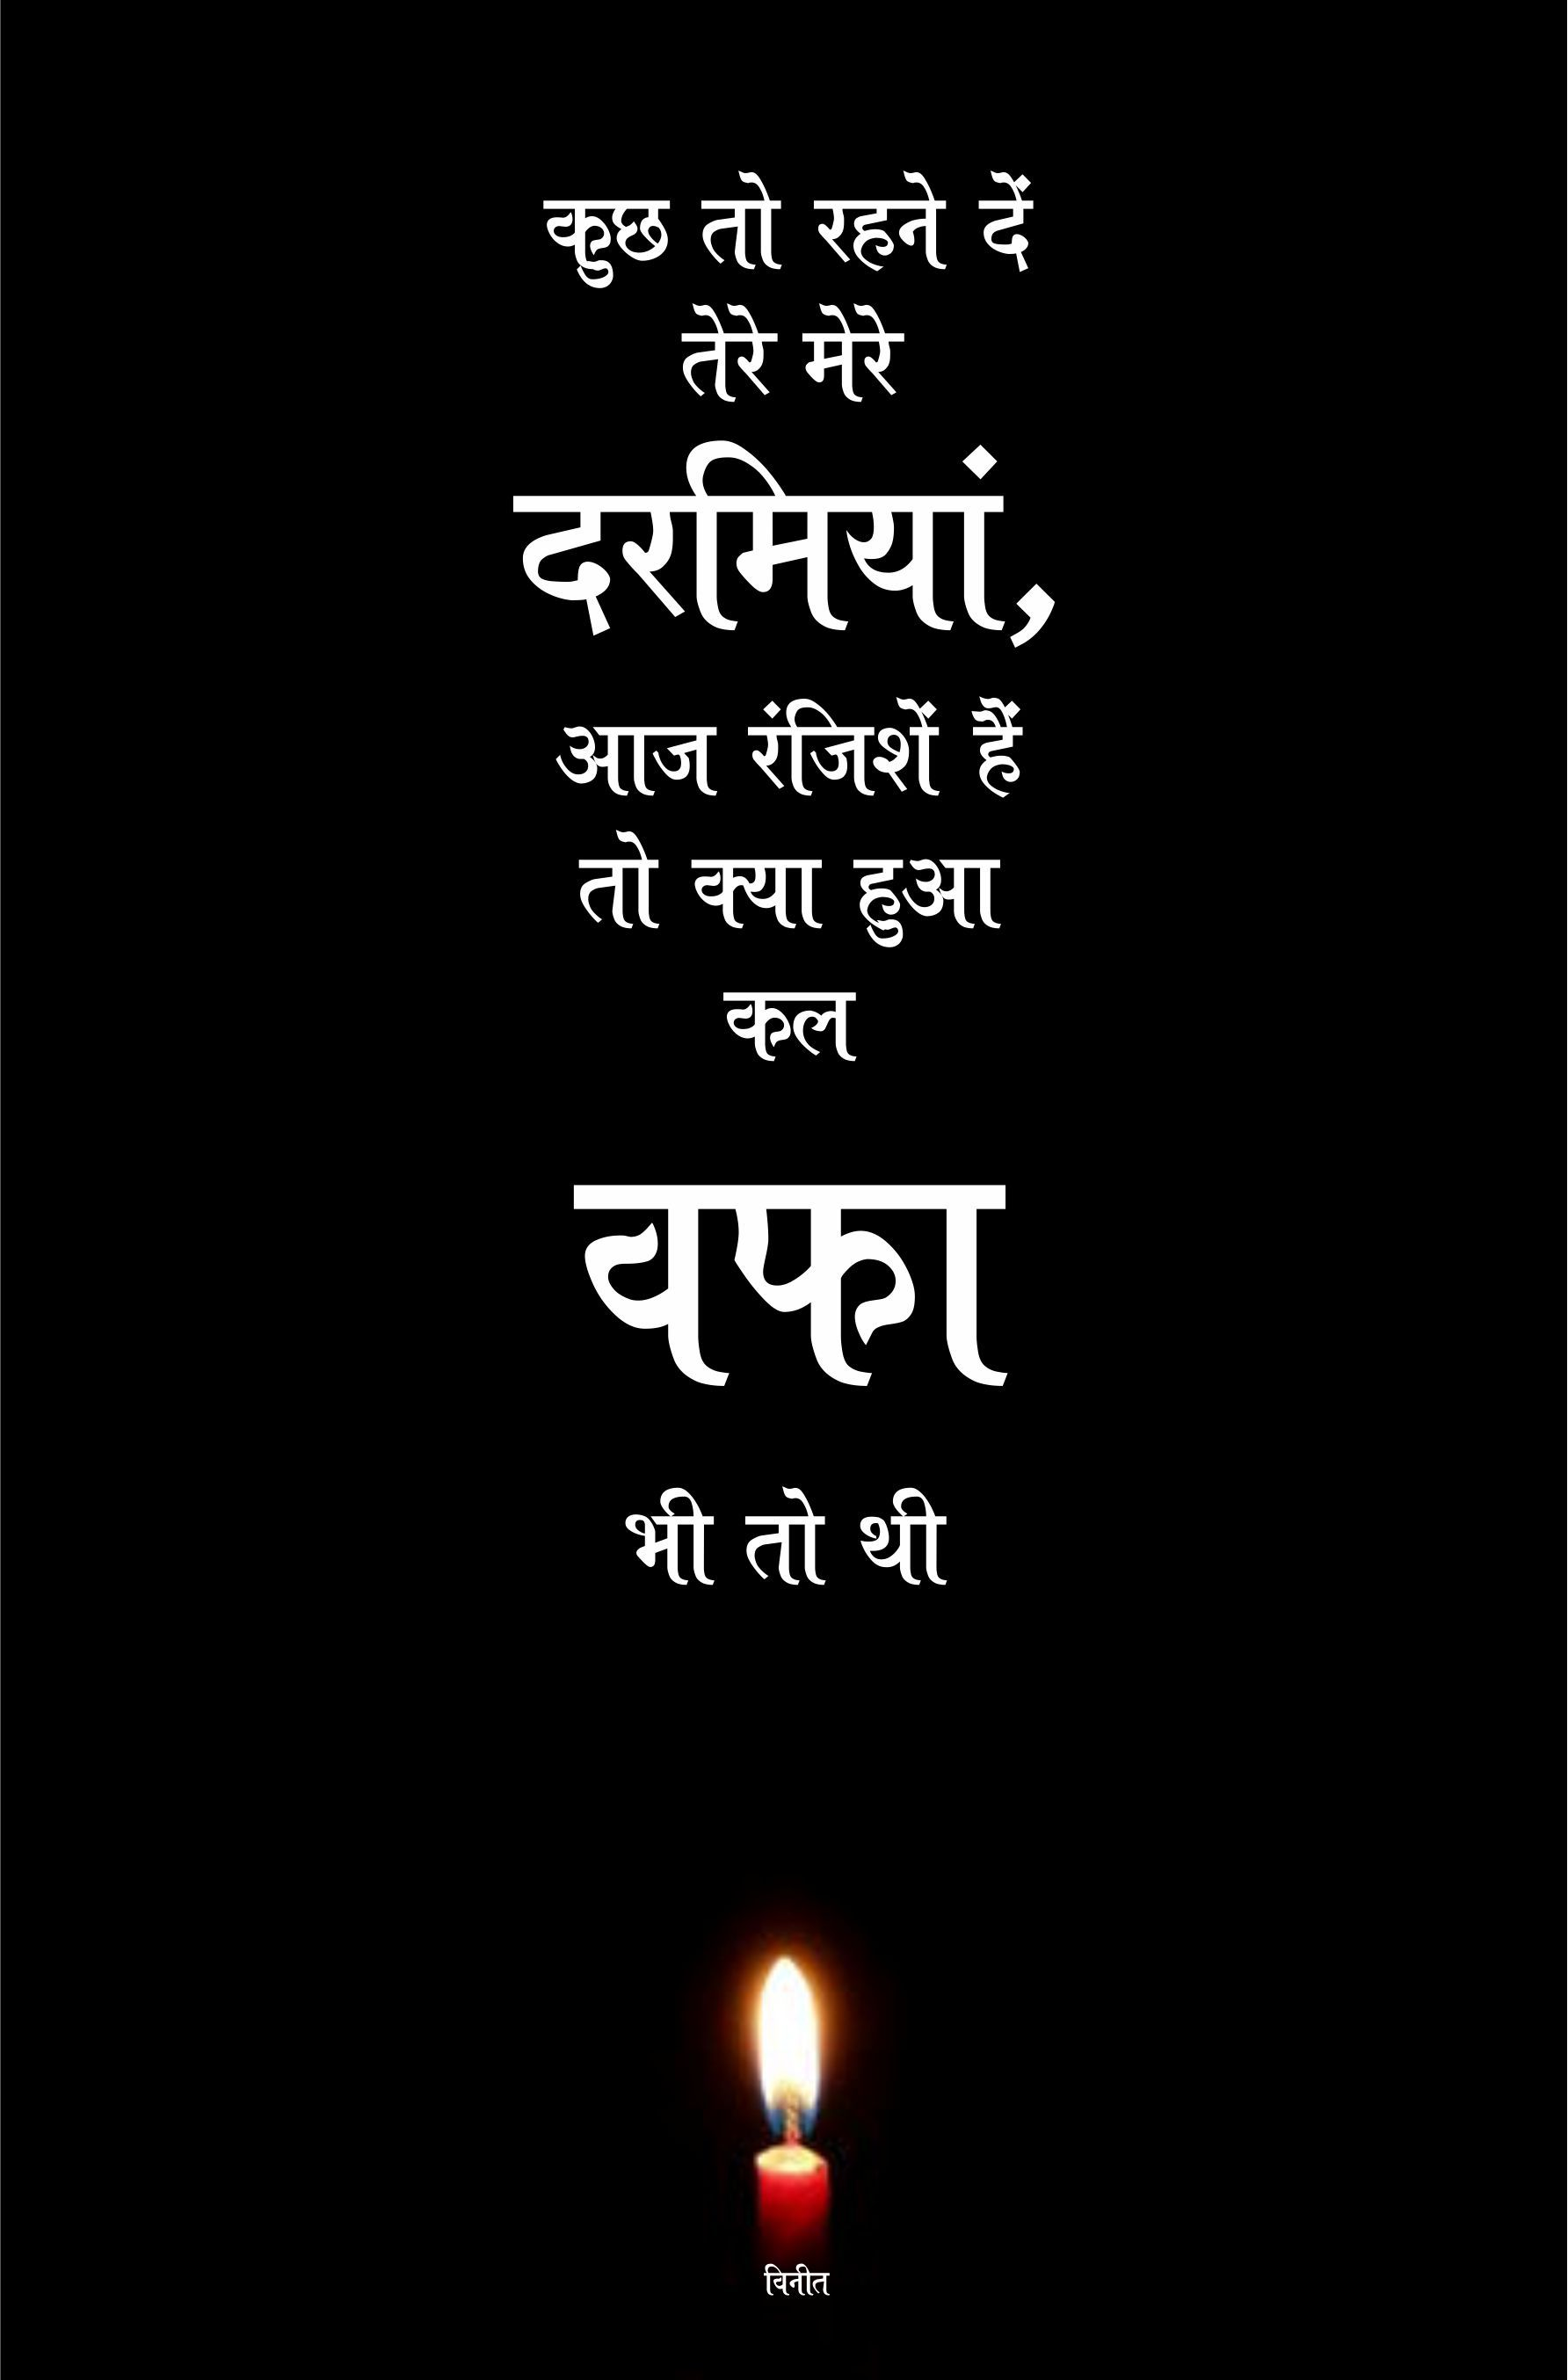 Pin by Pradip Parmar on best quote Gulzar quotes, Best